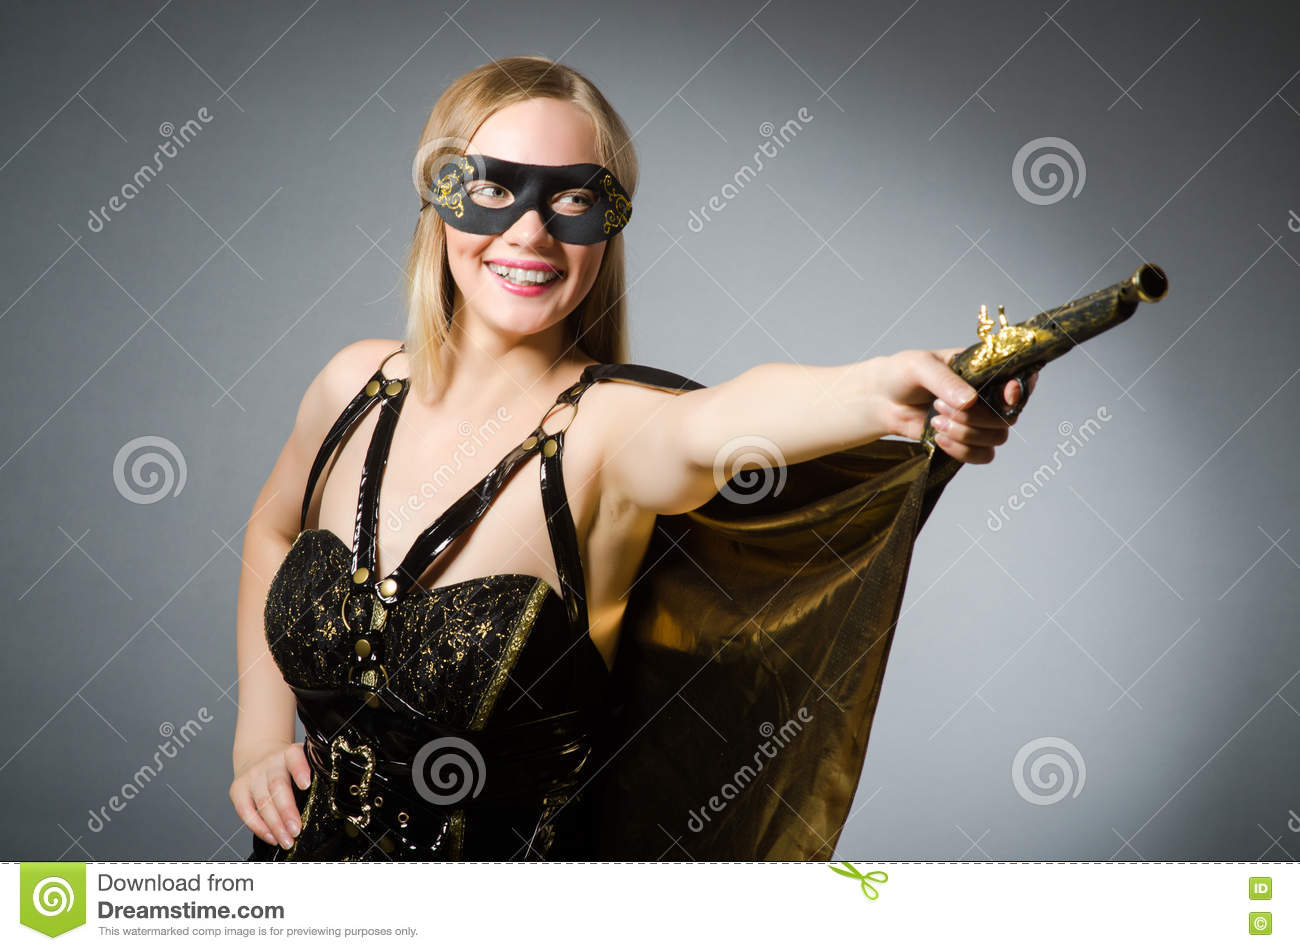 The woman in pirate costume